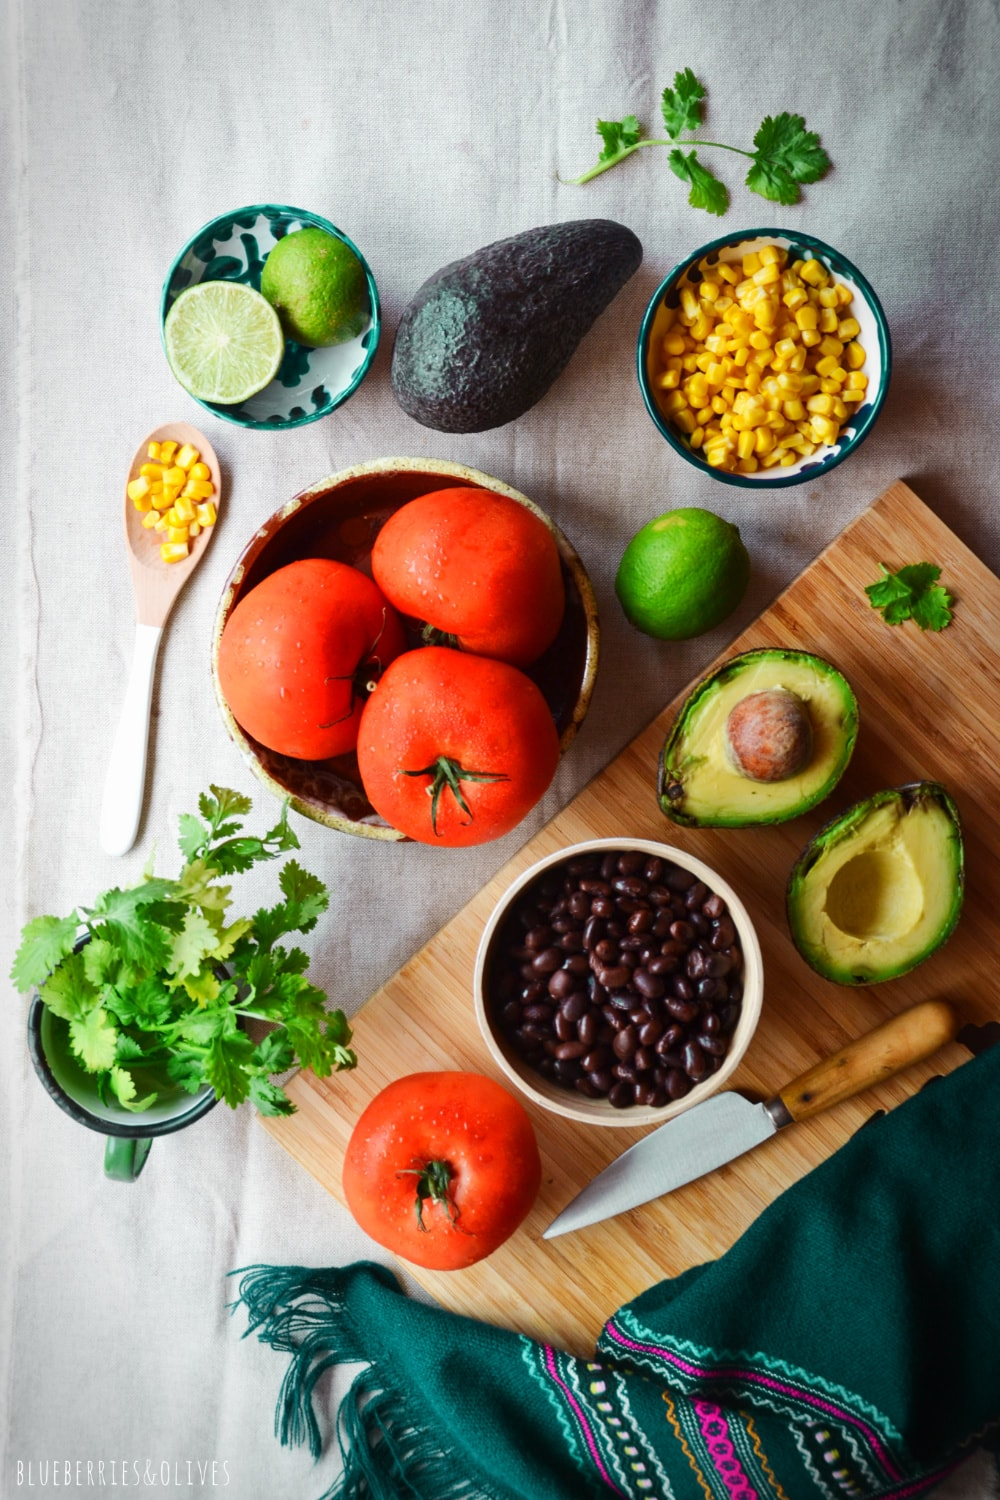 INGREDIENTS STUFFED TOMATOES, WOOD CUTTING BOARD WITH KNIFE, CORN, AVOCADO, LIME WEDGES, CILANTRO LEAVES, BLACK BEANS